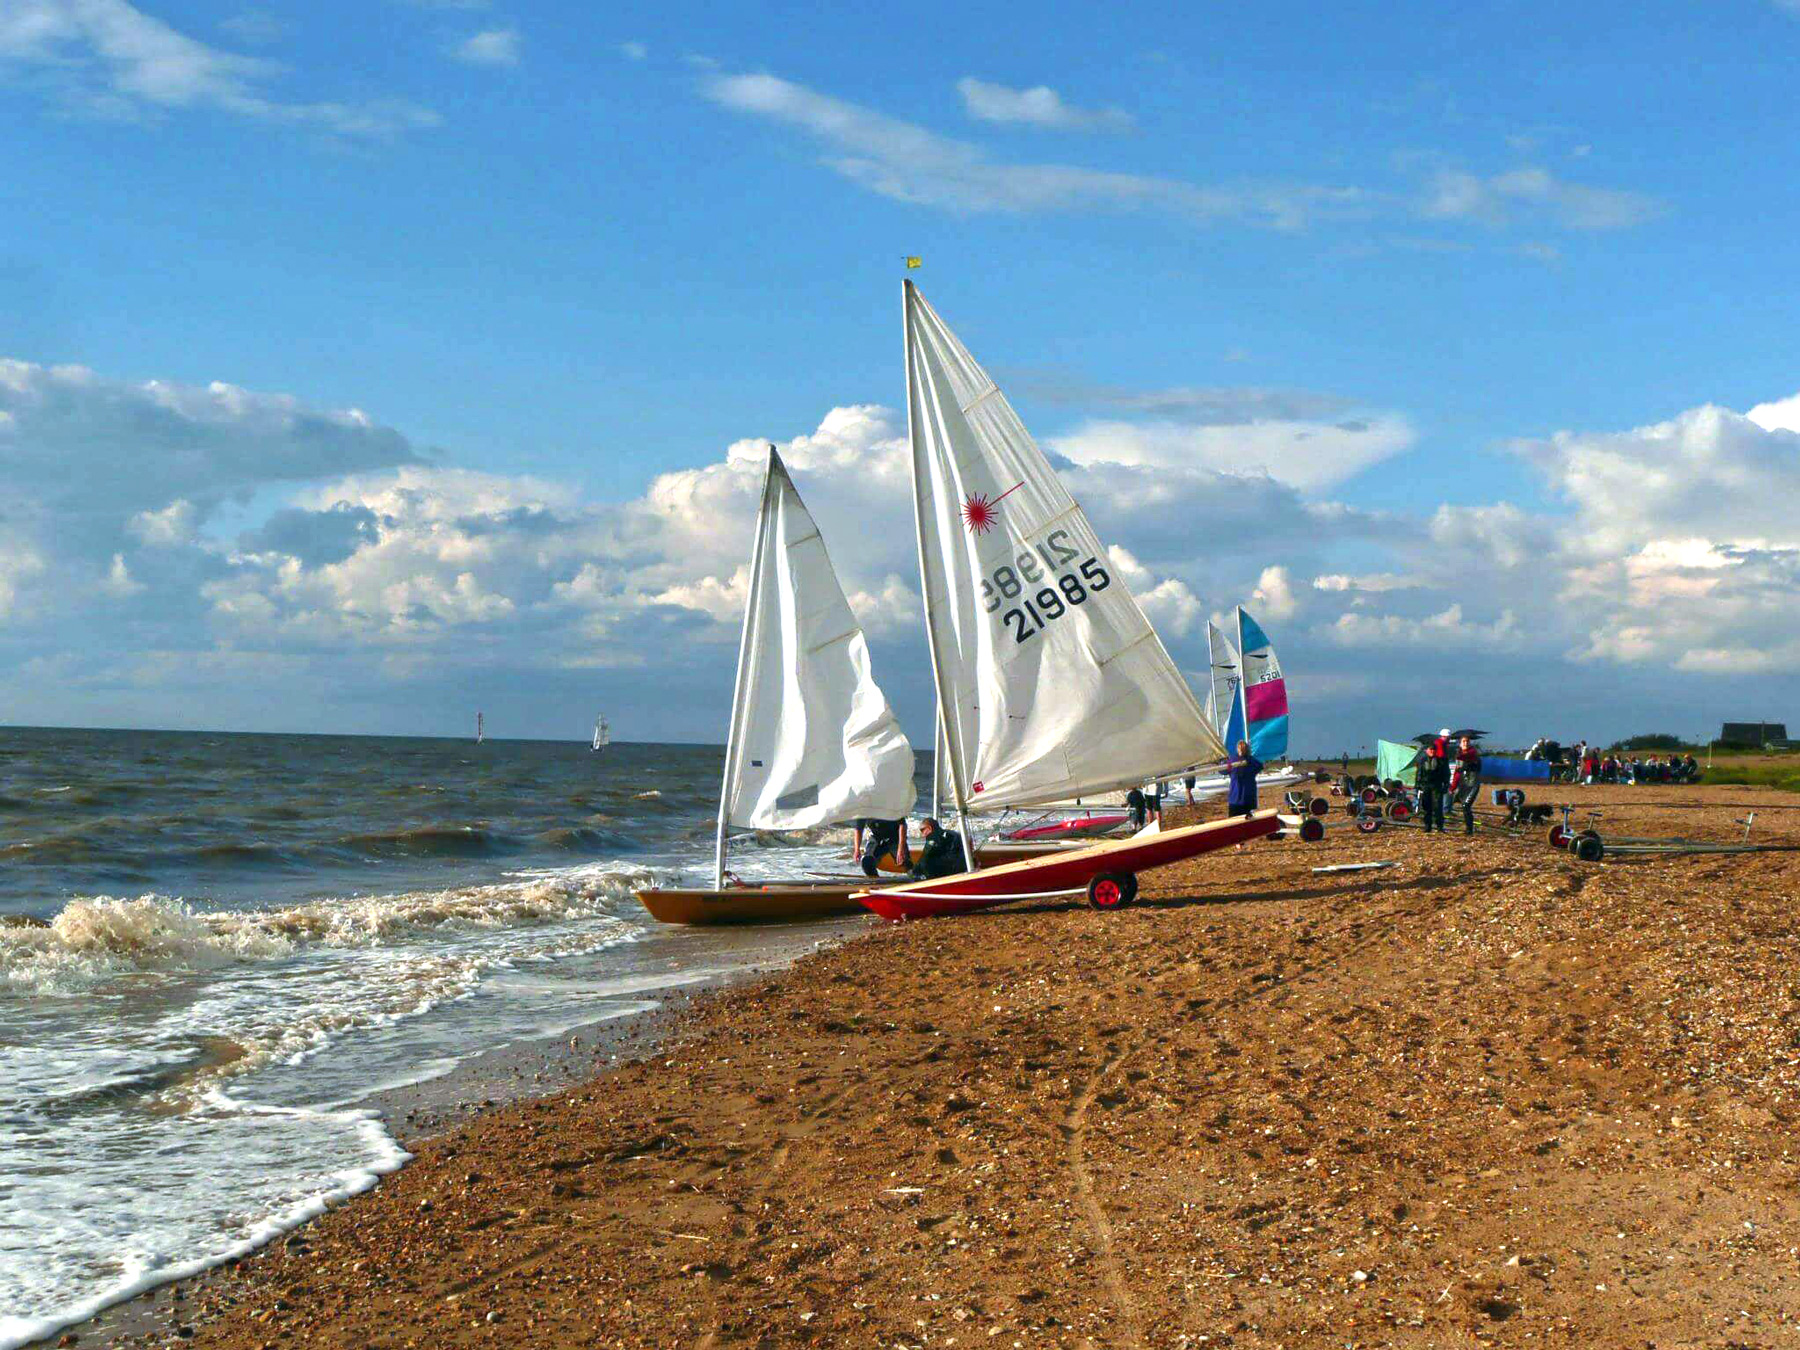 Laser sailing dingy boats on Snettisham beach